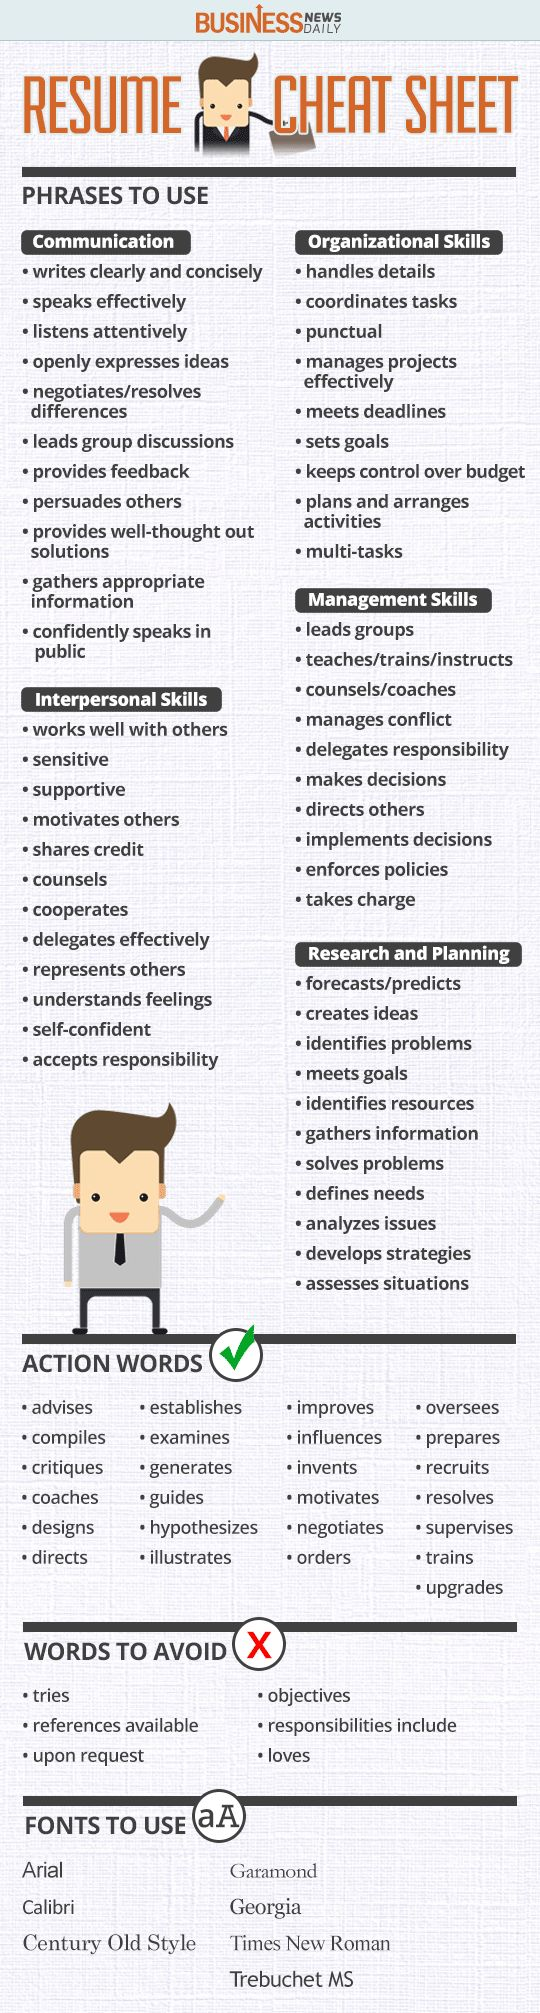 Opposenewapstandardsus  Pleasing  Ideas About Resume On Pinterest  Cv Format Resume Cv And  With Exciting Resume Cheat Sheet Infographic Andrews Almost Done With A Complete Unit On Employment Which With Amazing Construction Foreman Resume Also Resume For A Cashier In Addition Cna Description For Resume And Resume Optimization As Well As Do My Resume Additionally Career Objectives Resume From Pinterestcom With Opposenewapstandardsus  Exciting  Ideas About Resume On Pinterest  Cv Format Resume Cv And  With Amazing Resume Cheat Sheet Infographic Andrews Almost Done With A Complete Unit On Employment Which And Pleasing Construction Foreman Resume Also Resume For A Cashier In Addition Cna Description For Resume From Pinterestcom